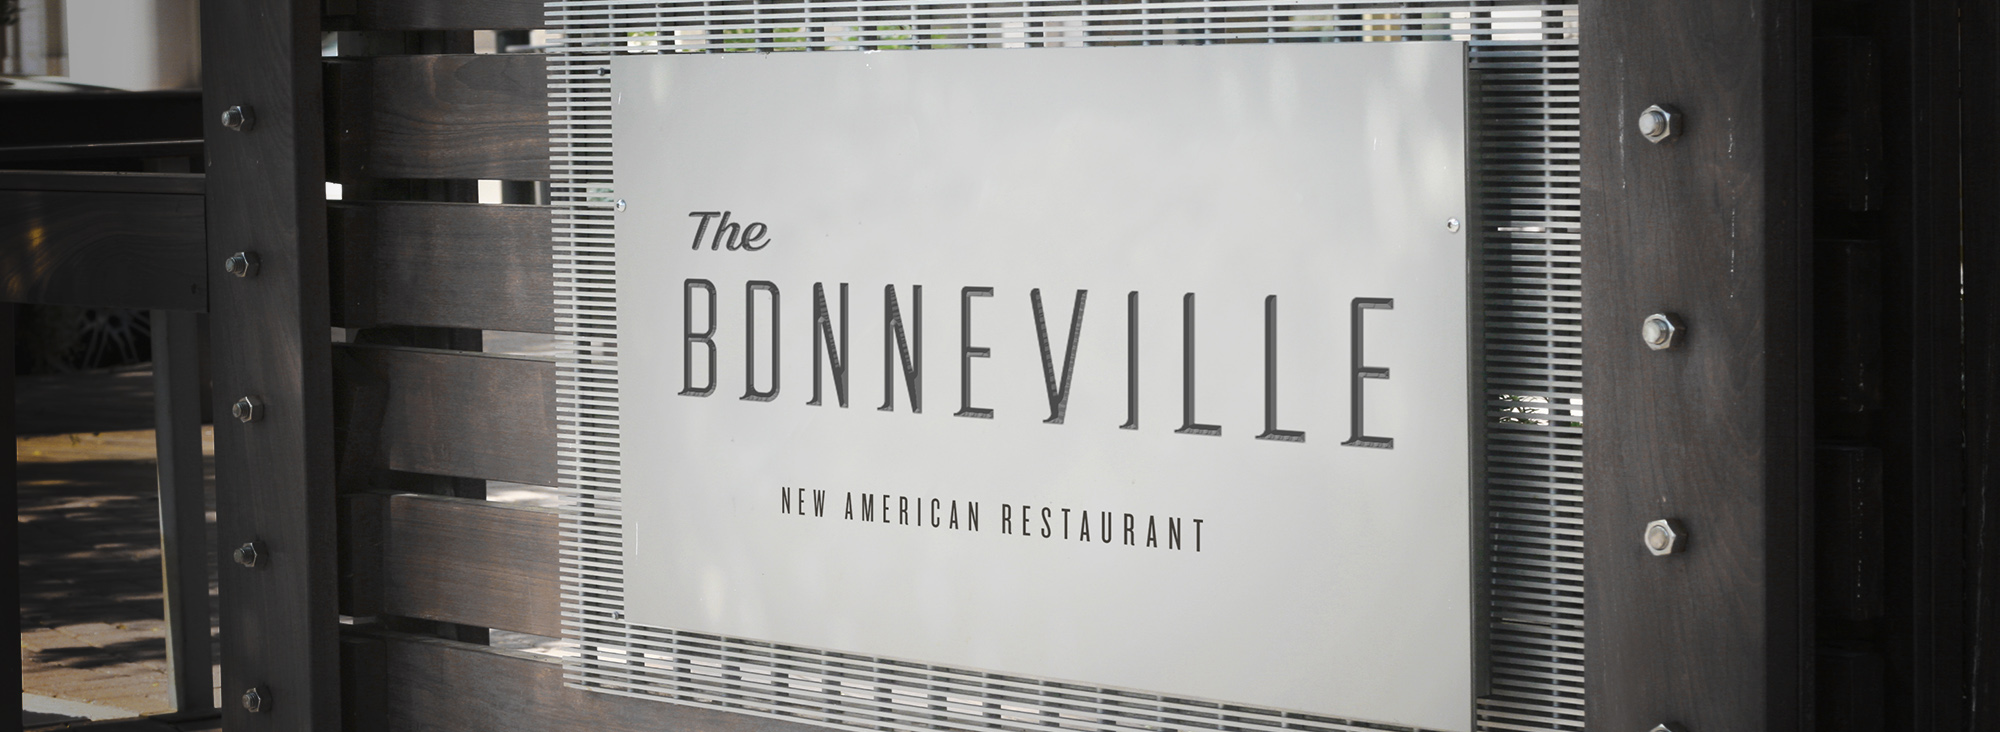 bonnevilleSIGN